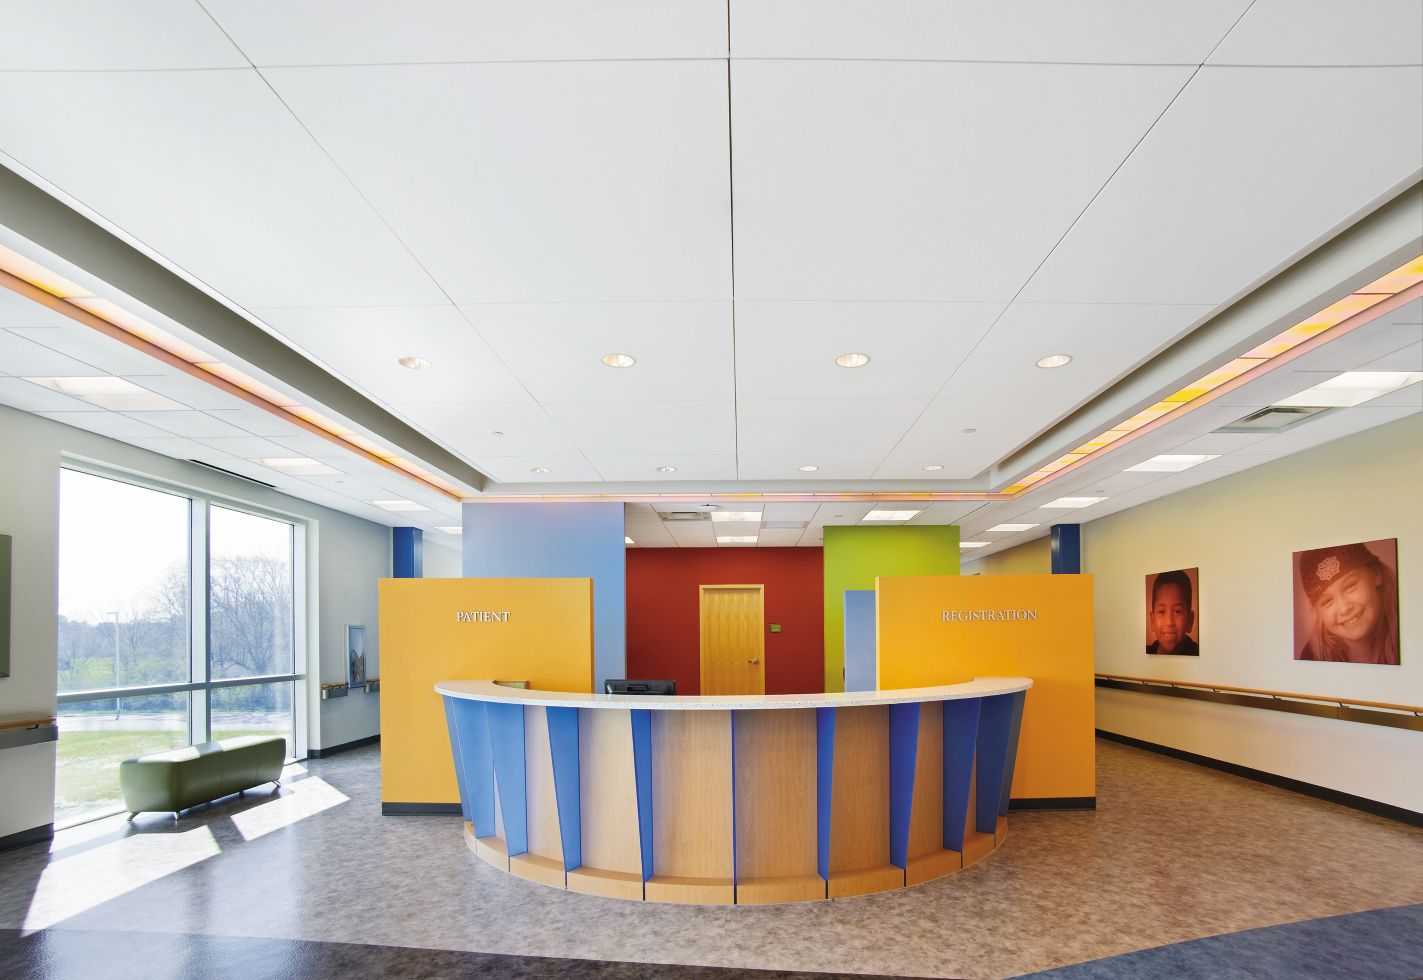 Children's Hospital of the King's Daughters, Norfolk, VA